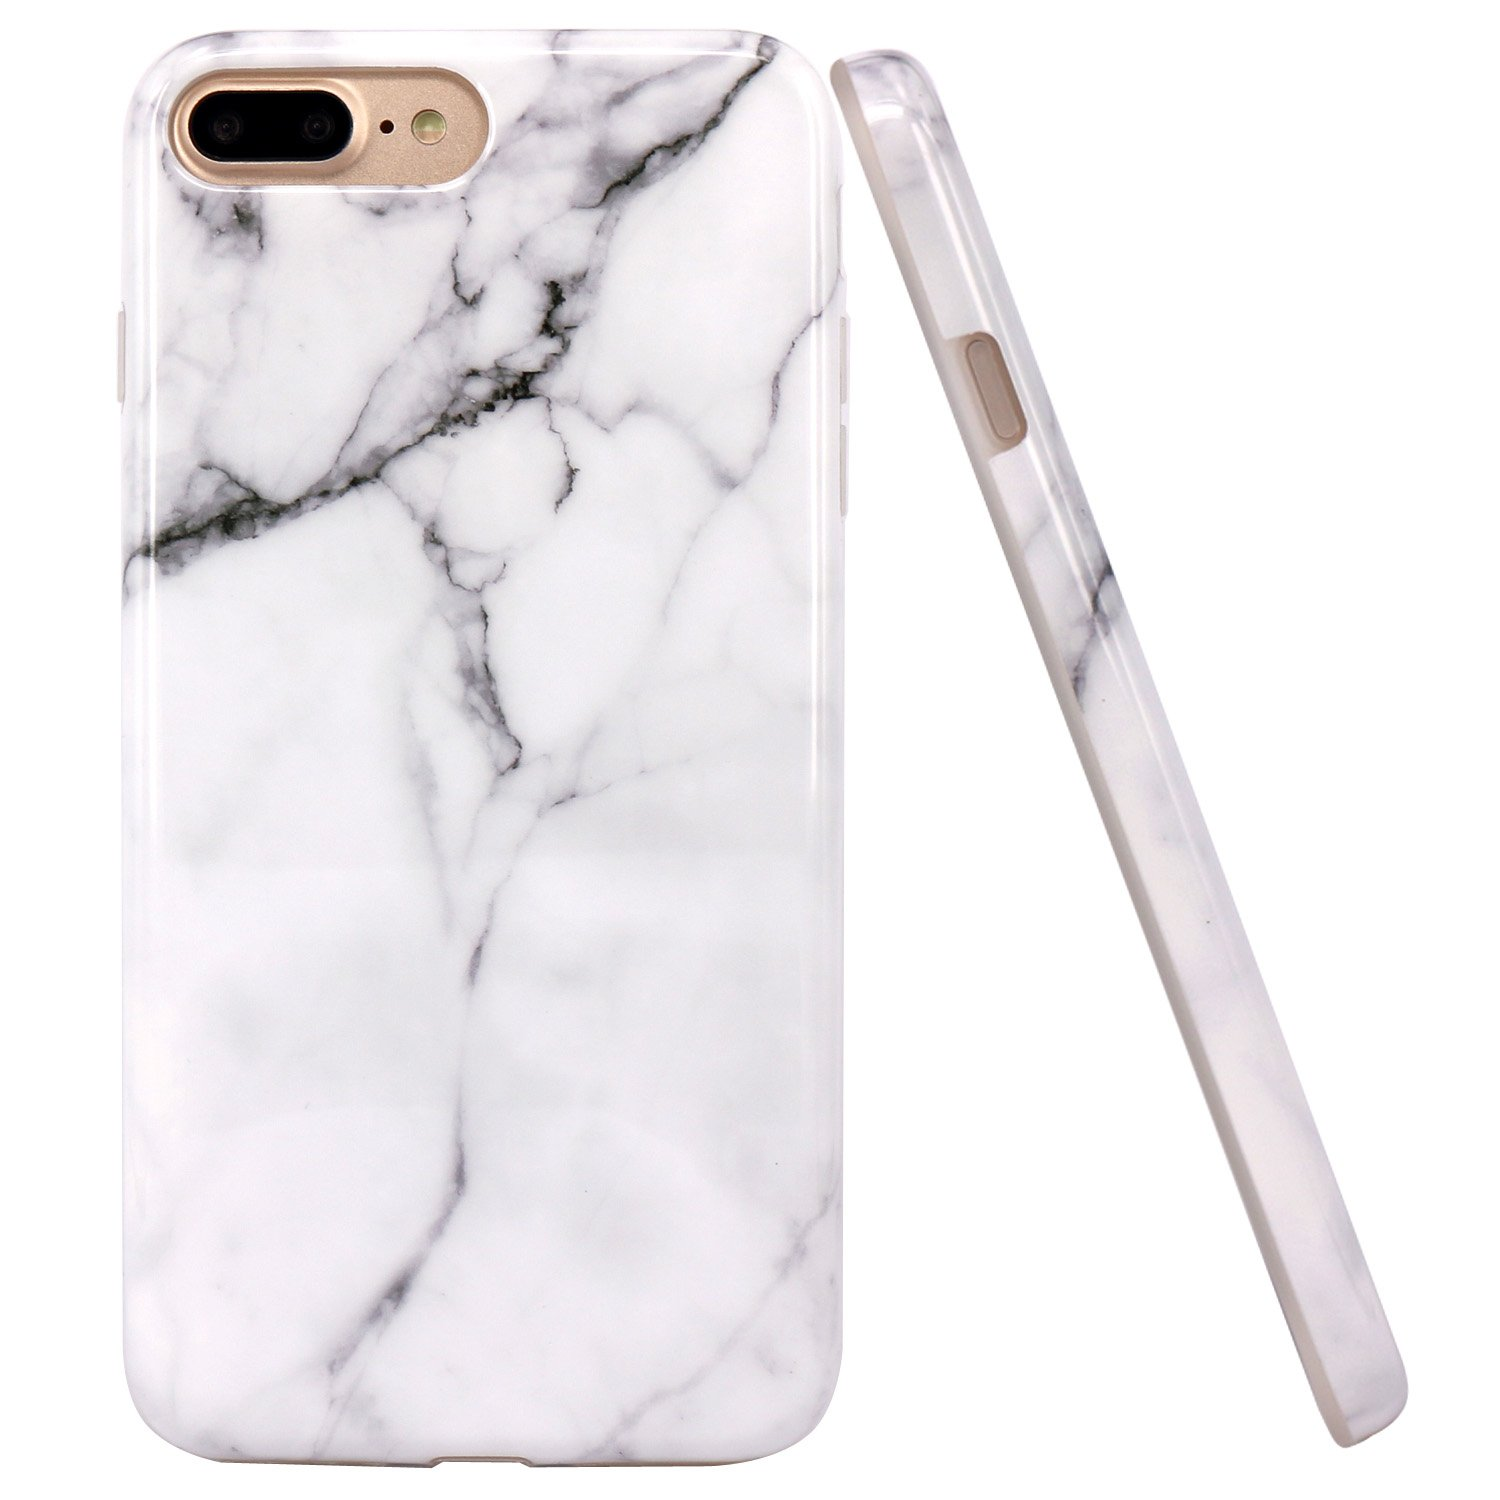 size 40 22488 e20e8 iPhone 7 Plus Case, JAHOLAN White Marble Design Clear Bumper Glossy TPU  Soft Rubber Silicone Cover Phone Case for Apple iPhone 7 Plus (2016) /  iPhone ...